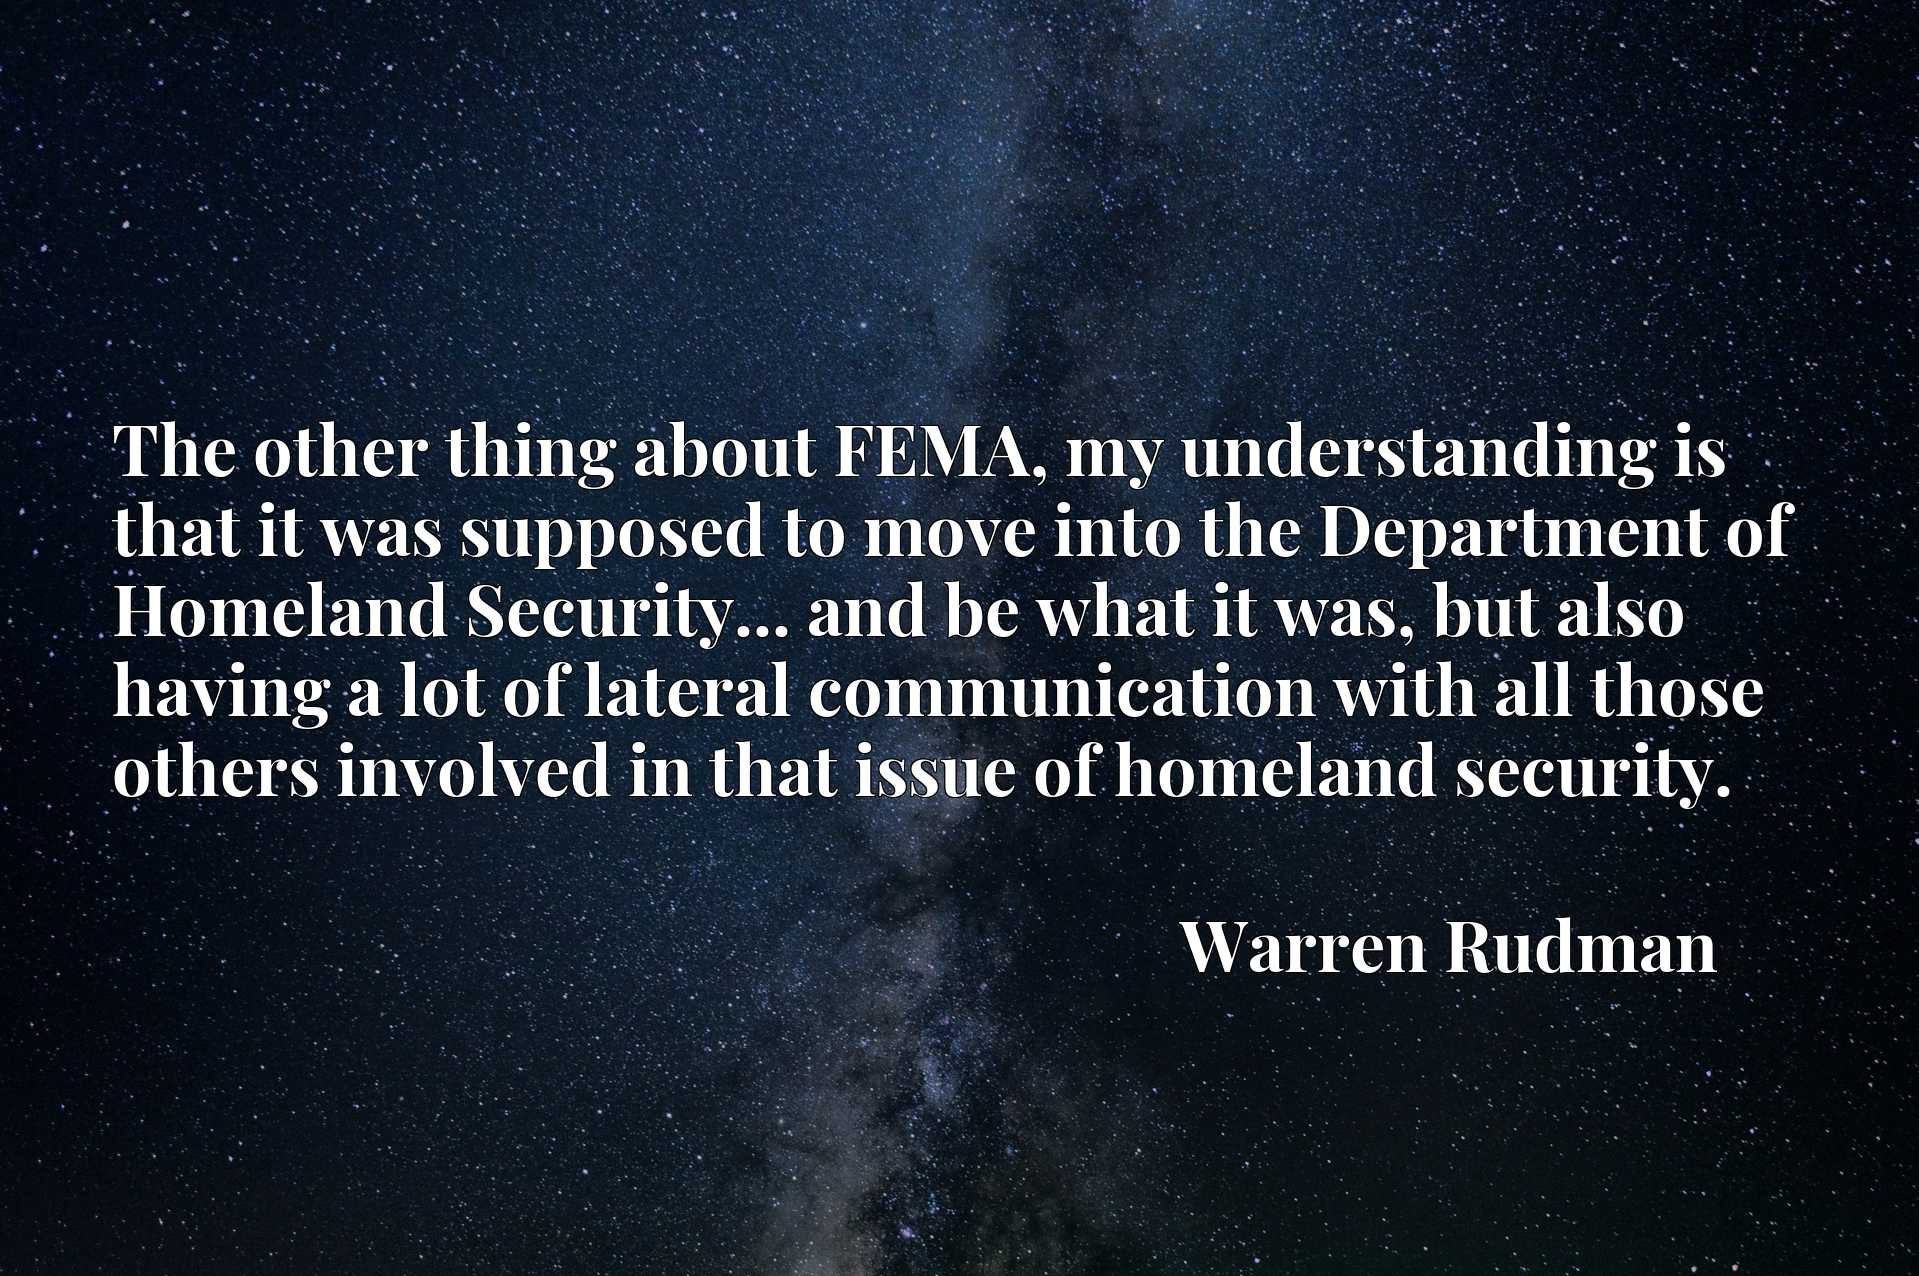 The other thing about FEMA, my understanding is that it was supposed to move into the Department of Homeland Security... and be what it was, but also having a lot of lateral communication with all those others involved in that issue of homeland security.